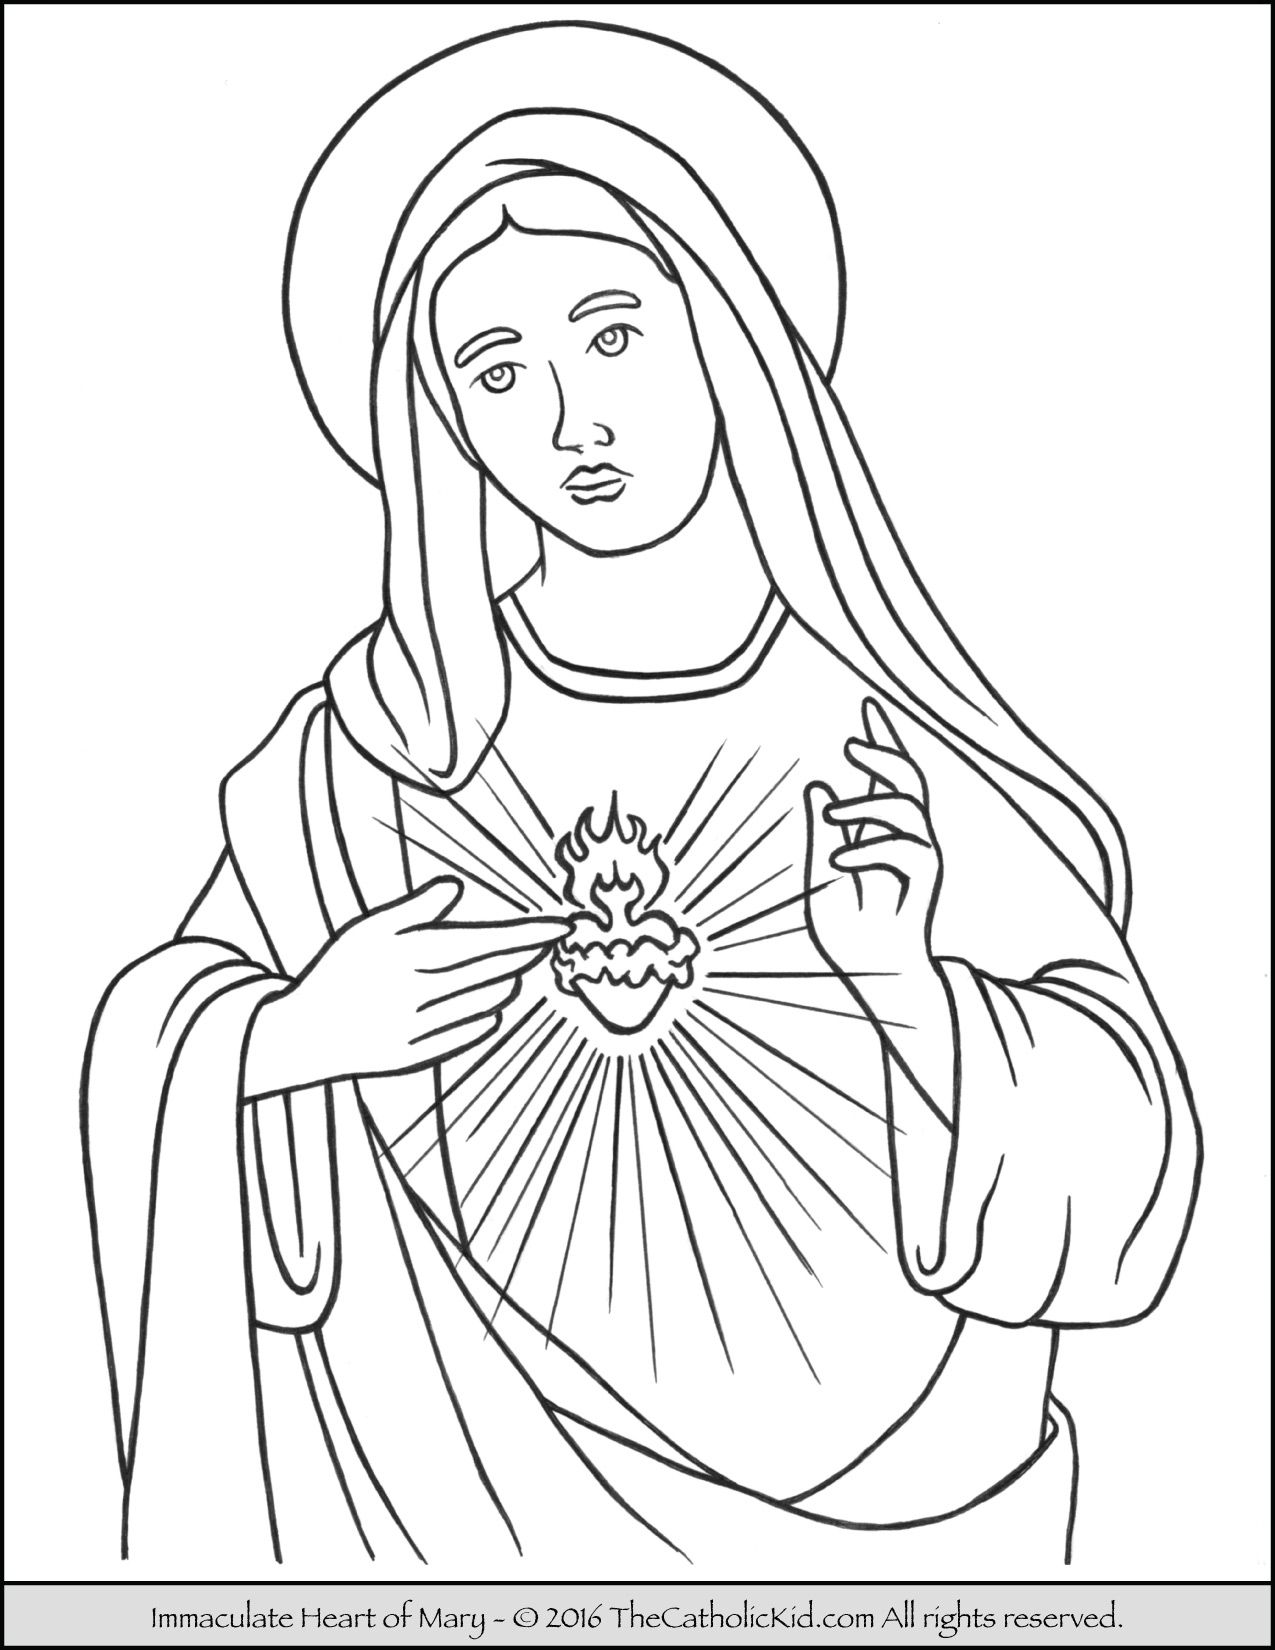 Immaculate Heart Of Mary Coloring Page   Mary Coloring Pages